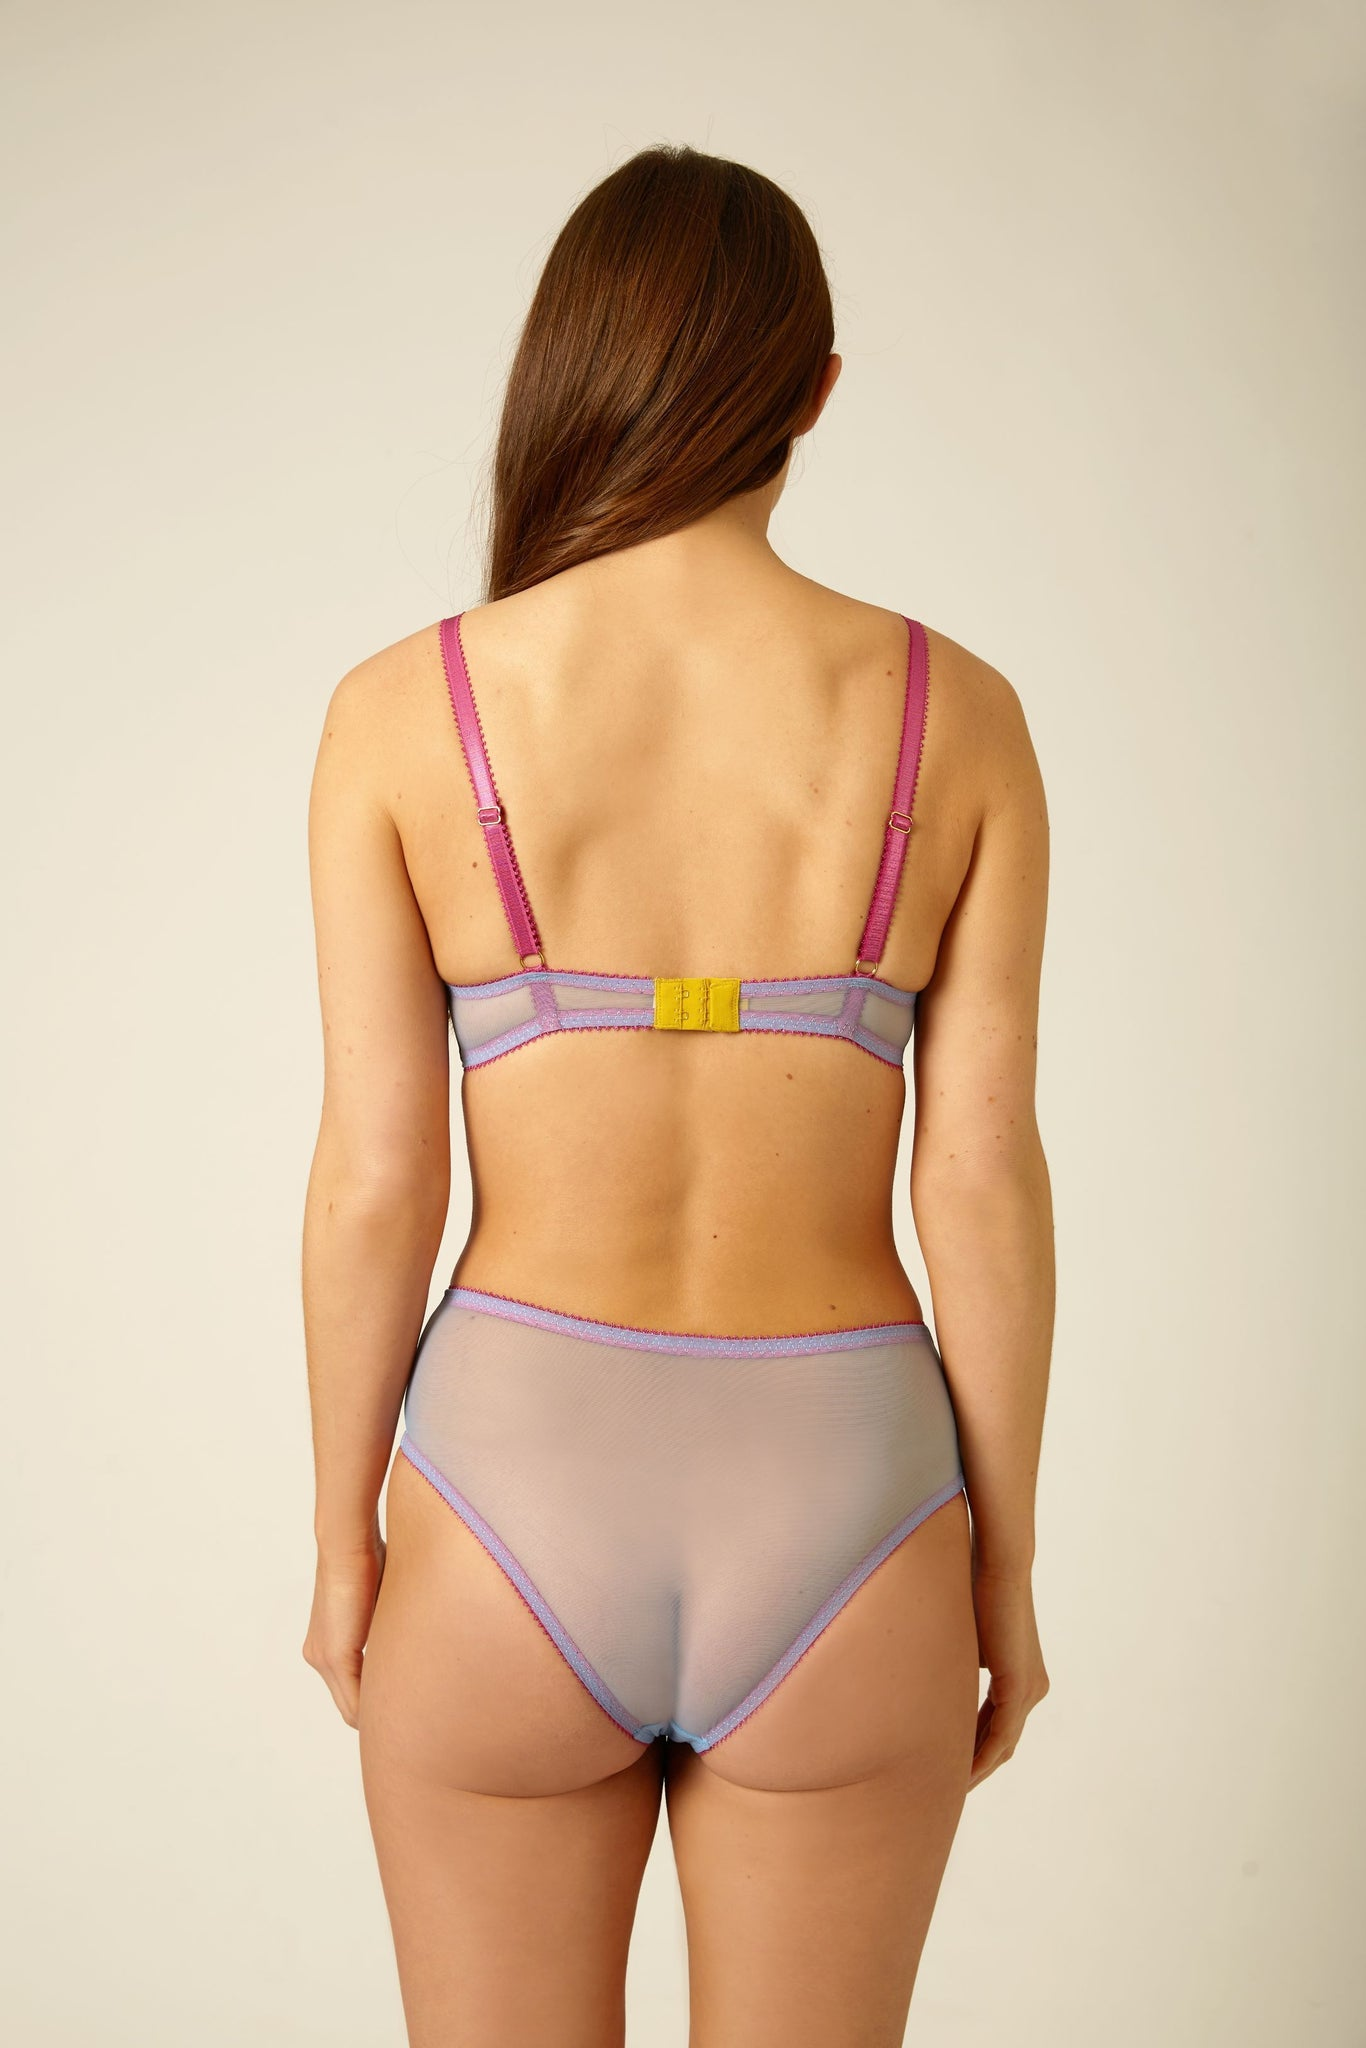 Marnie High Waist Knicker - Dora Larsen | Colourful Lingerie‎